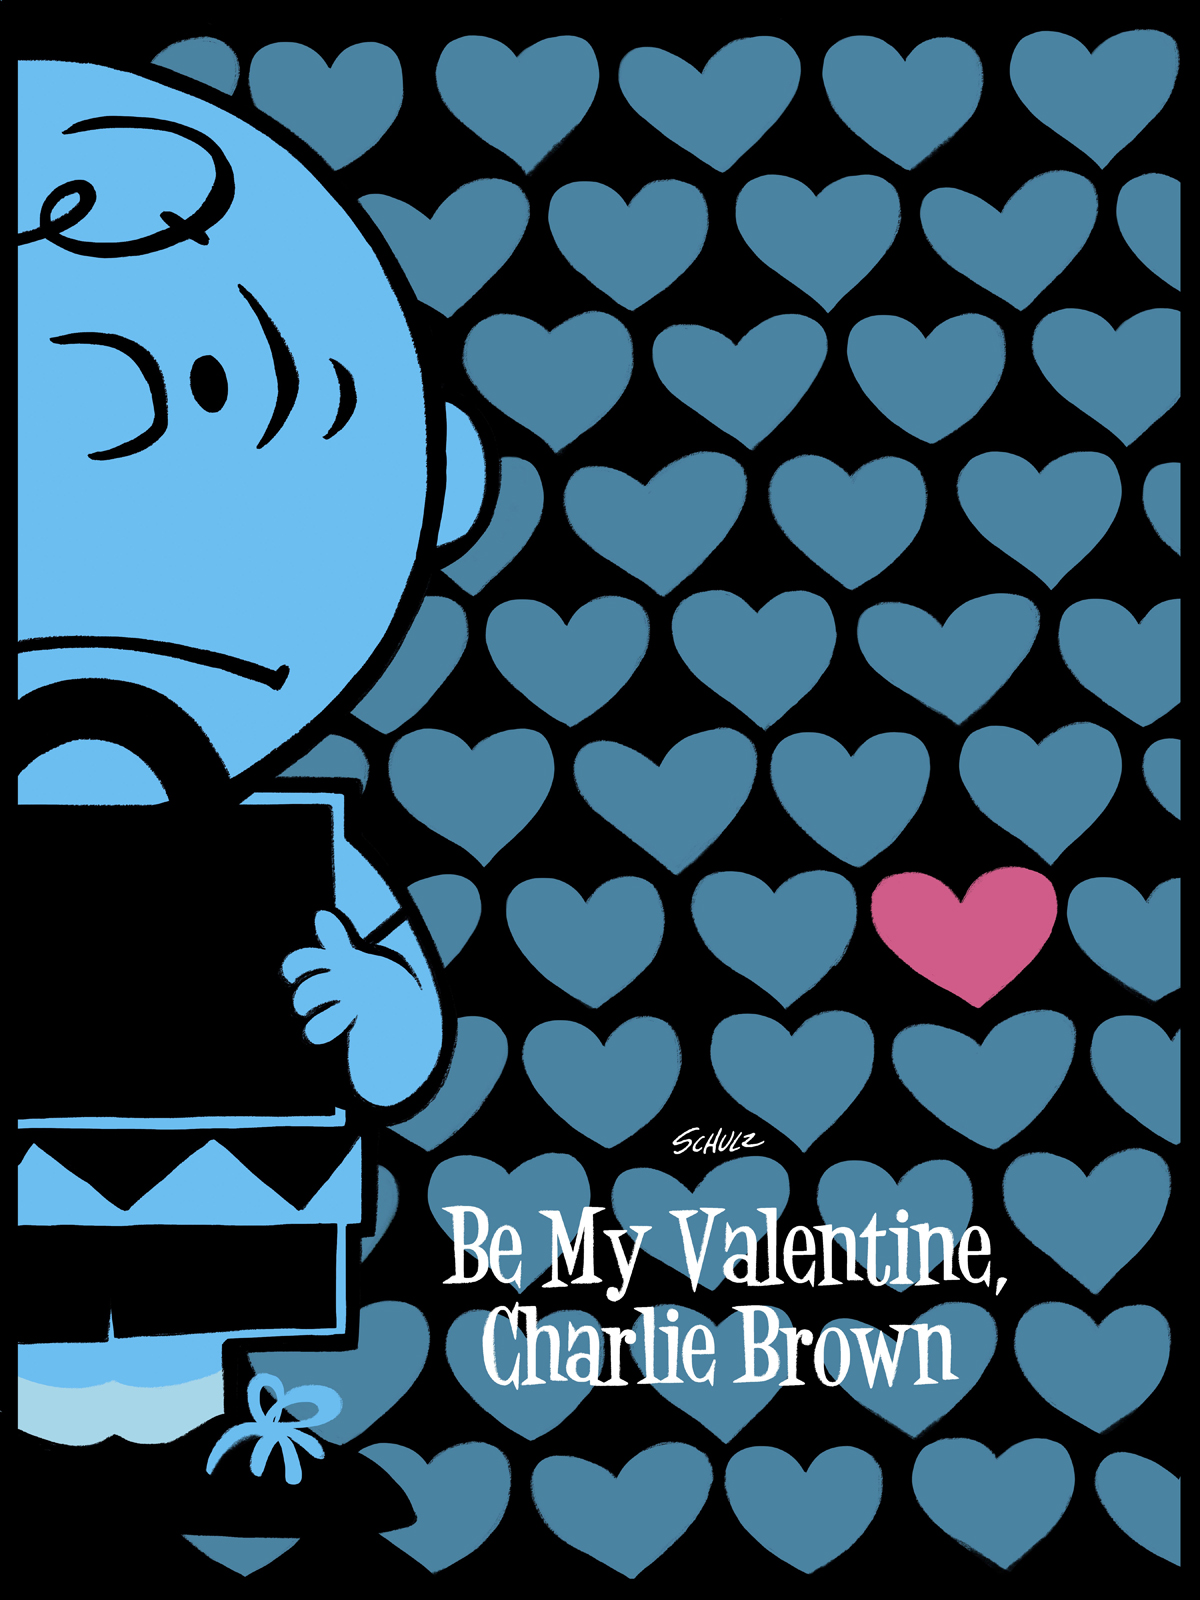 bove Be My Valentine, Charlie Brown variant